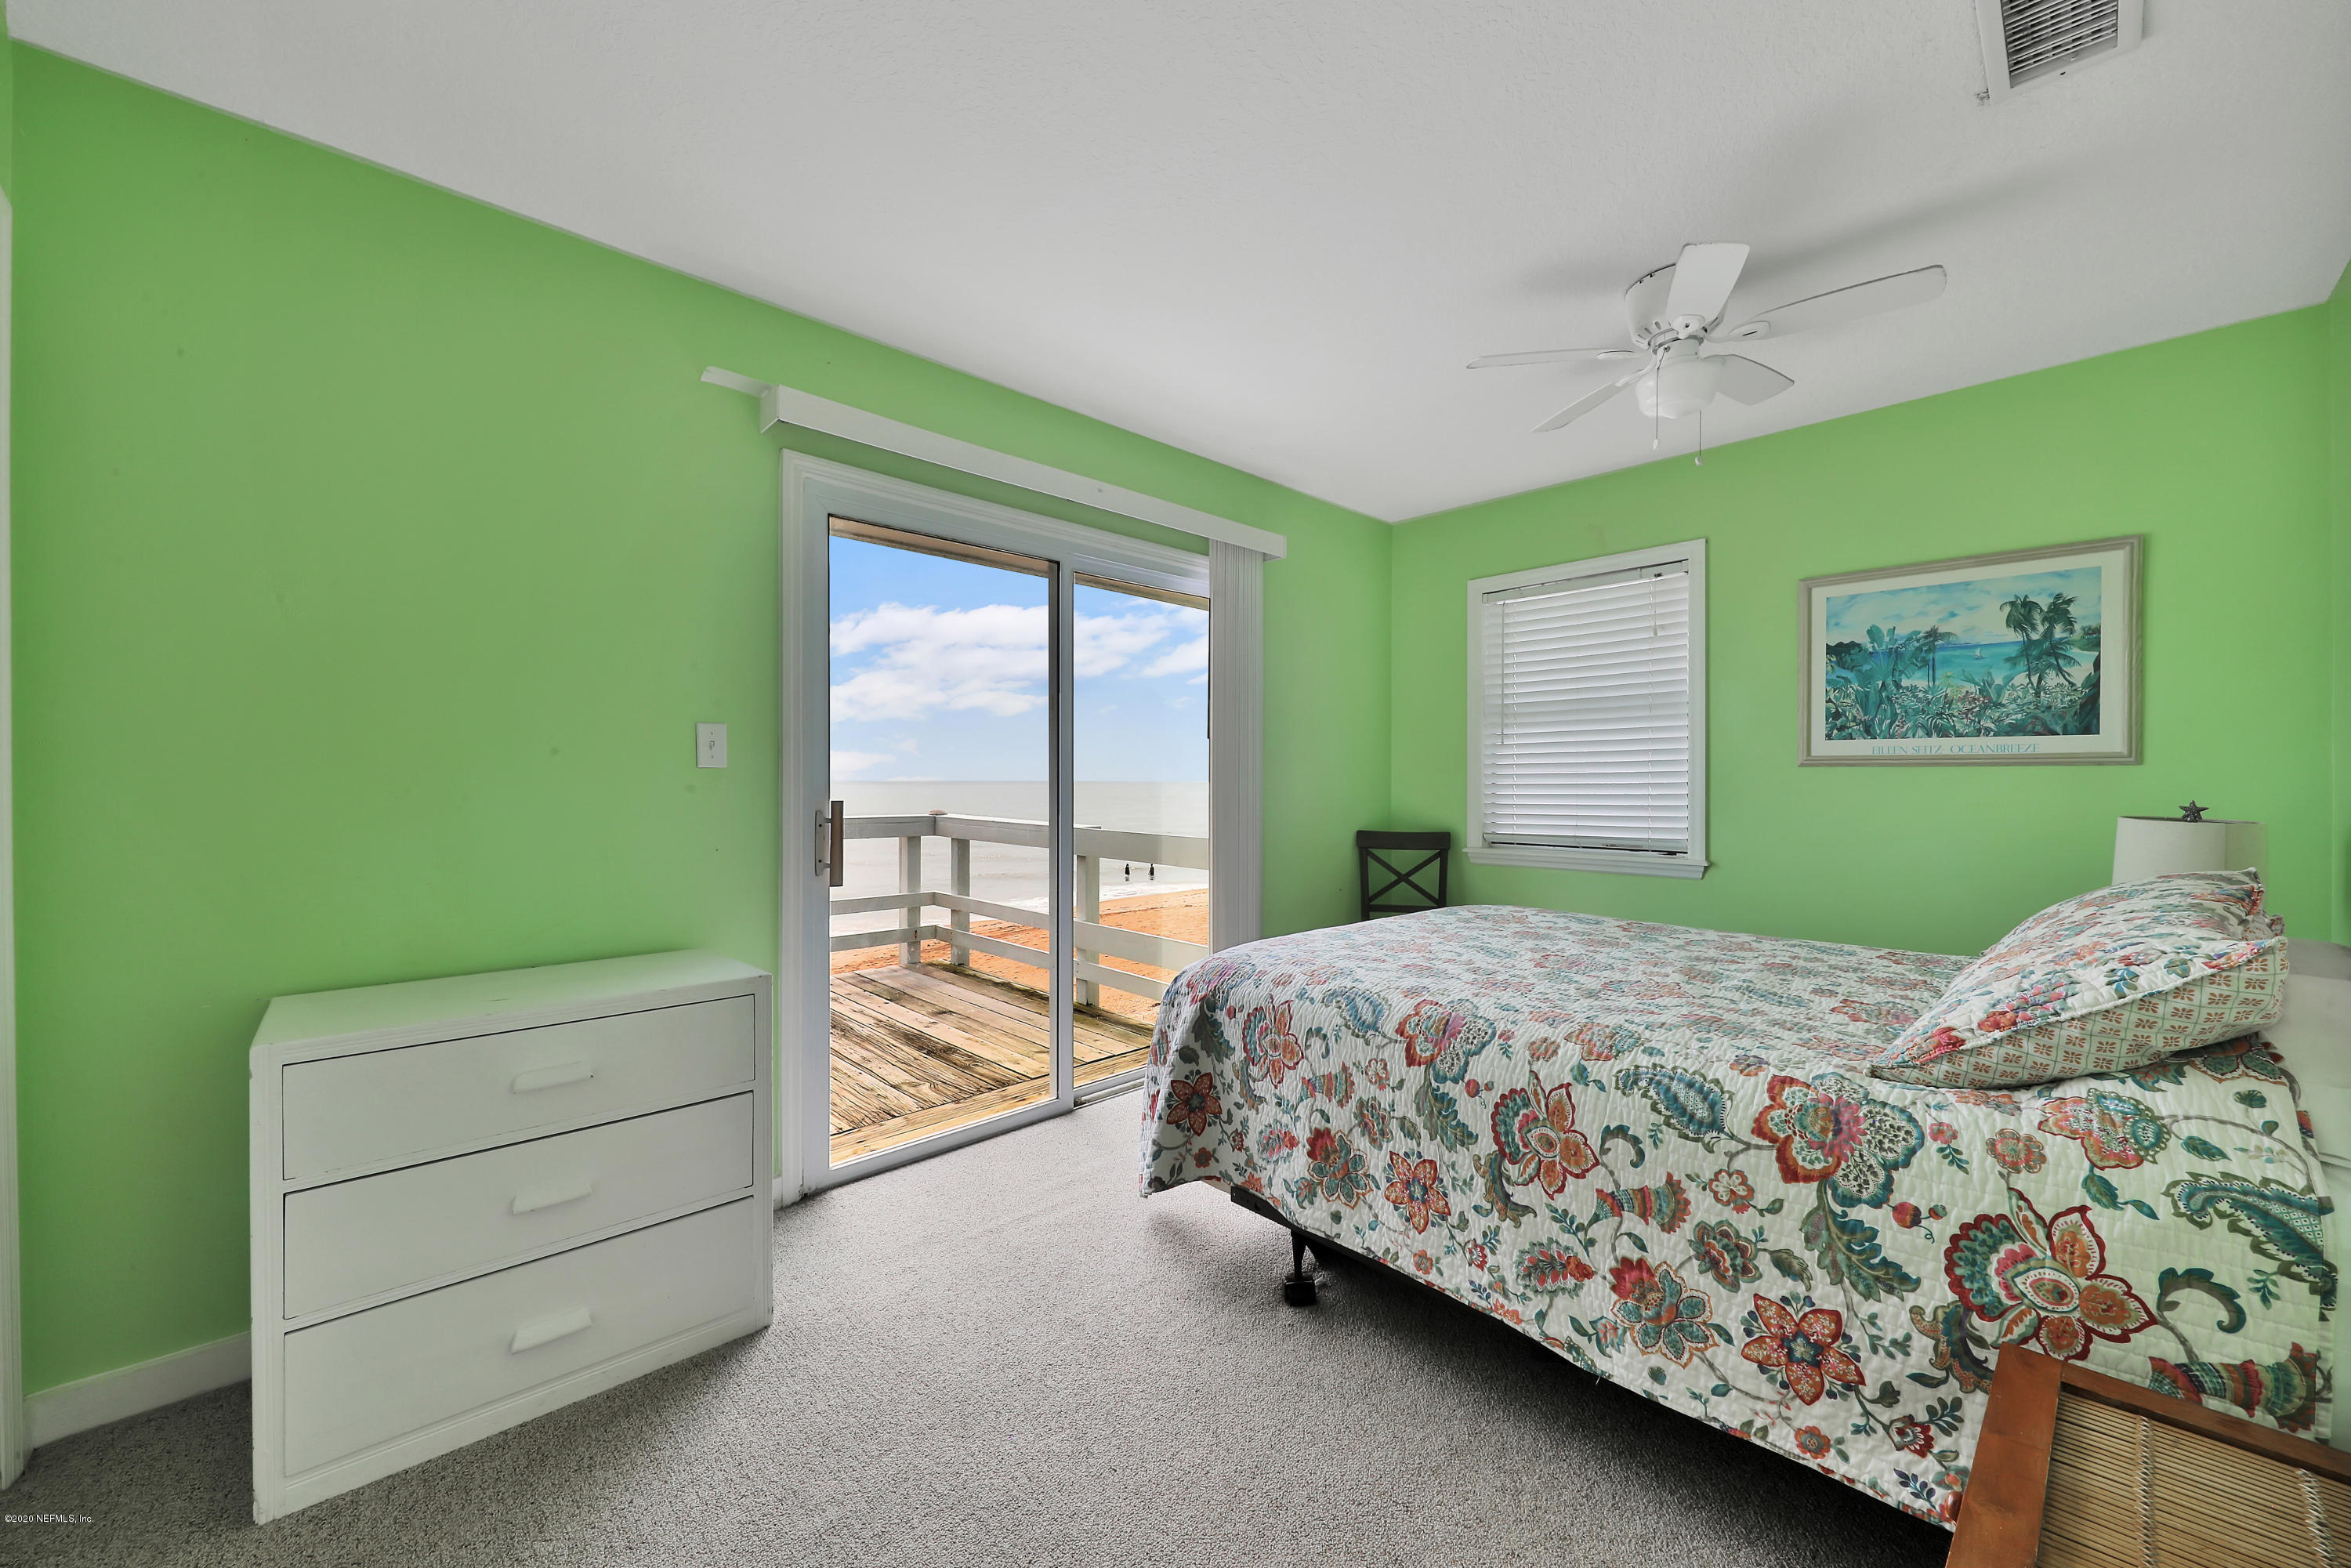 3276 COASTAL, ST AUGUSTINE, FLORIDA 32084, 2 Bedrooms Bedrooms, ,1 BathroomBathrooms,Residential,For sale,COASTAL,1080087